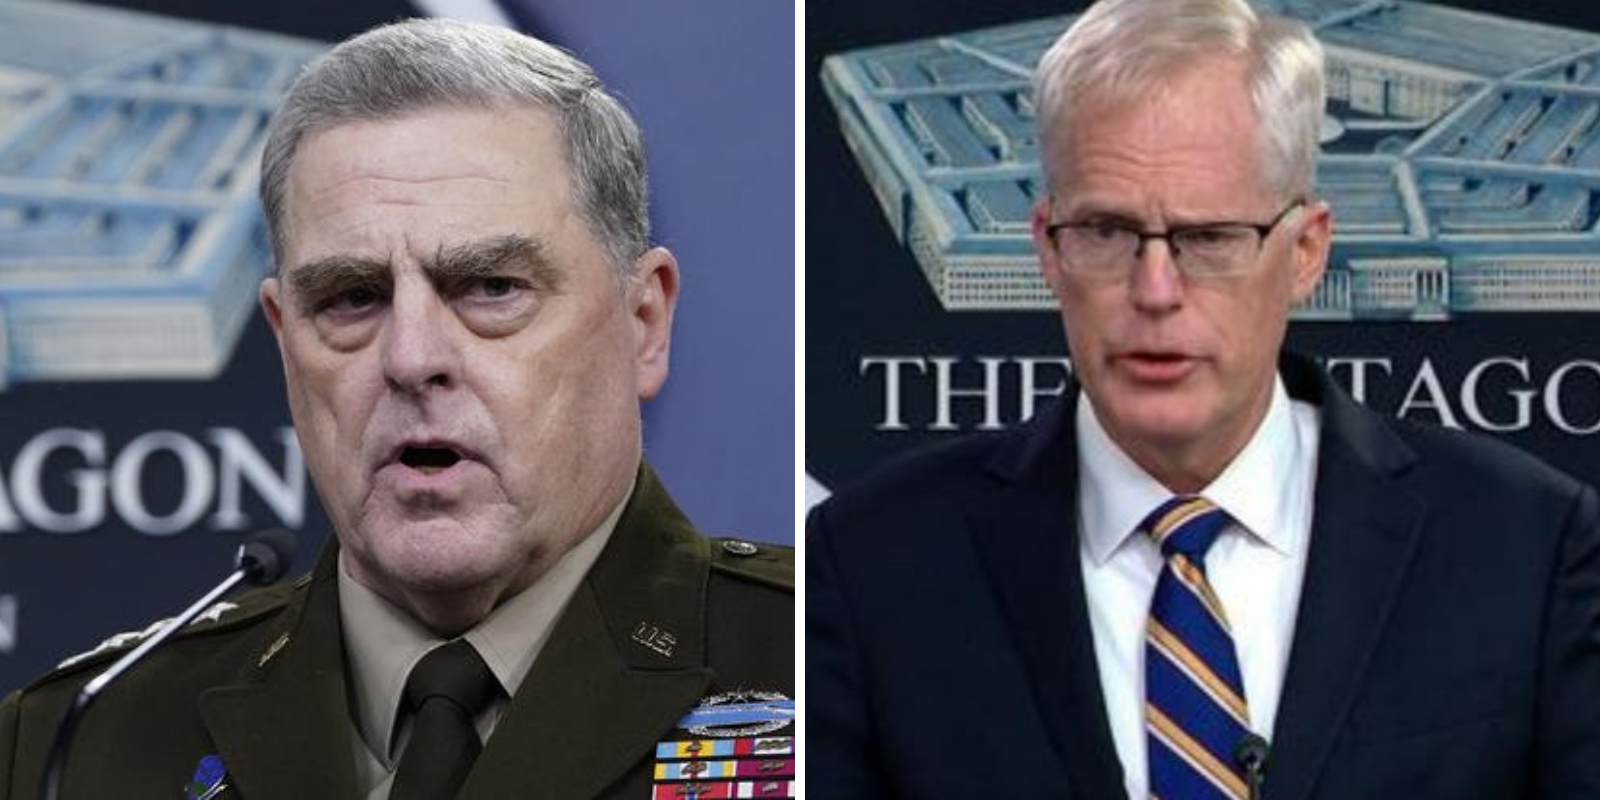 BREAKING: Trump acting Sec of Defense says he didn't authorize Milley to call China, calls for immediate resignation